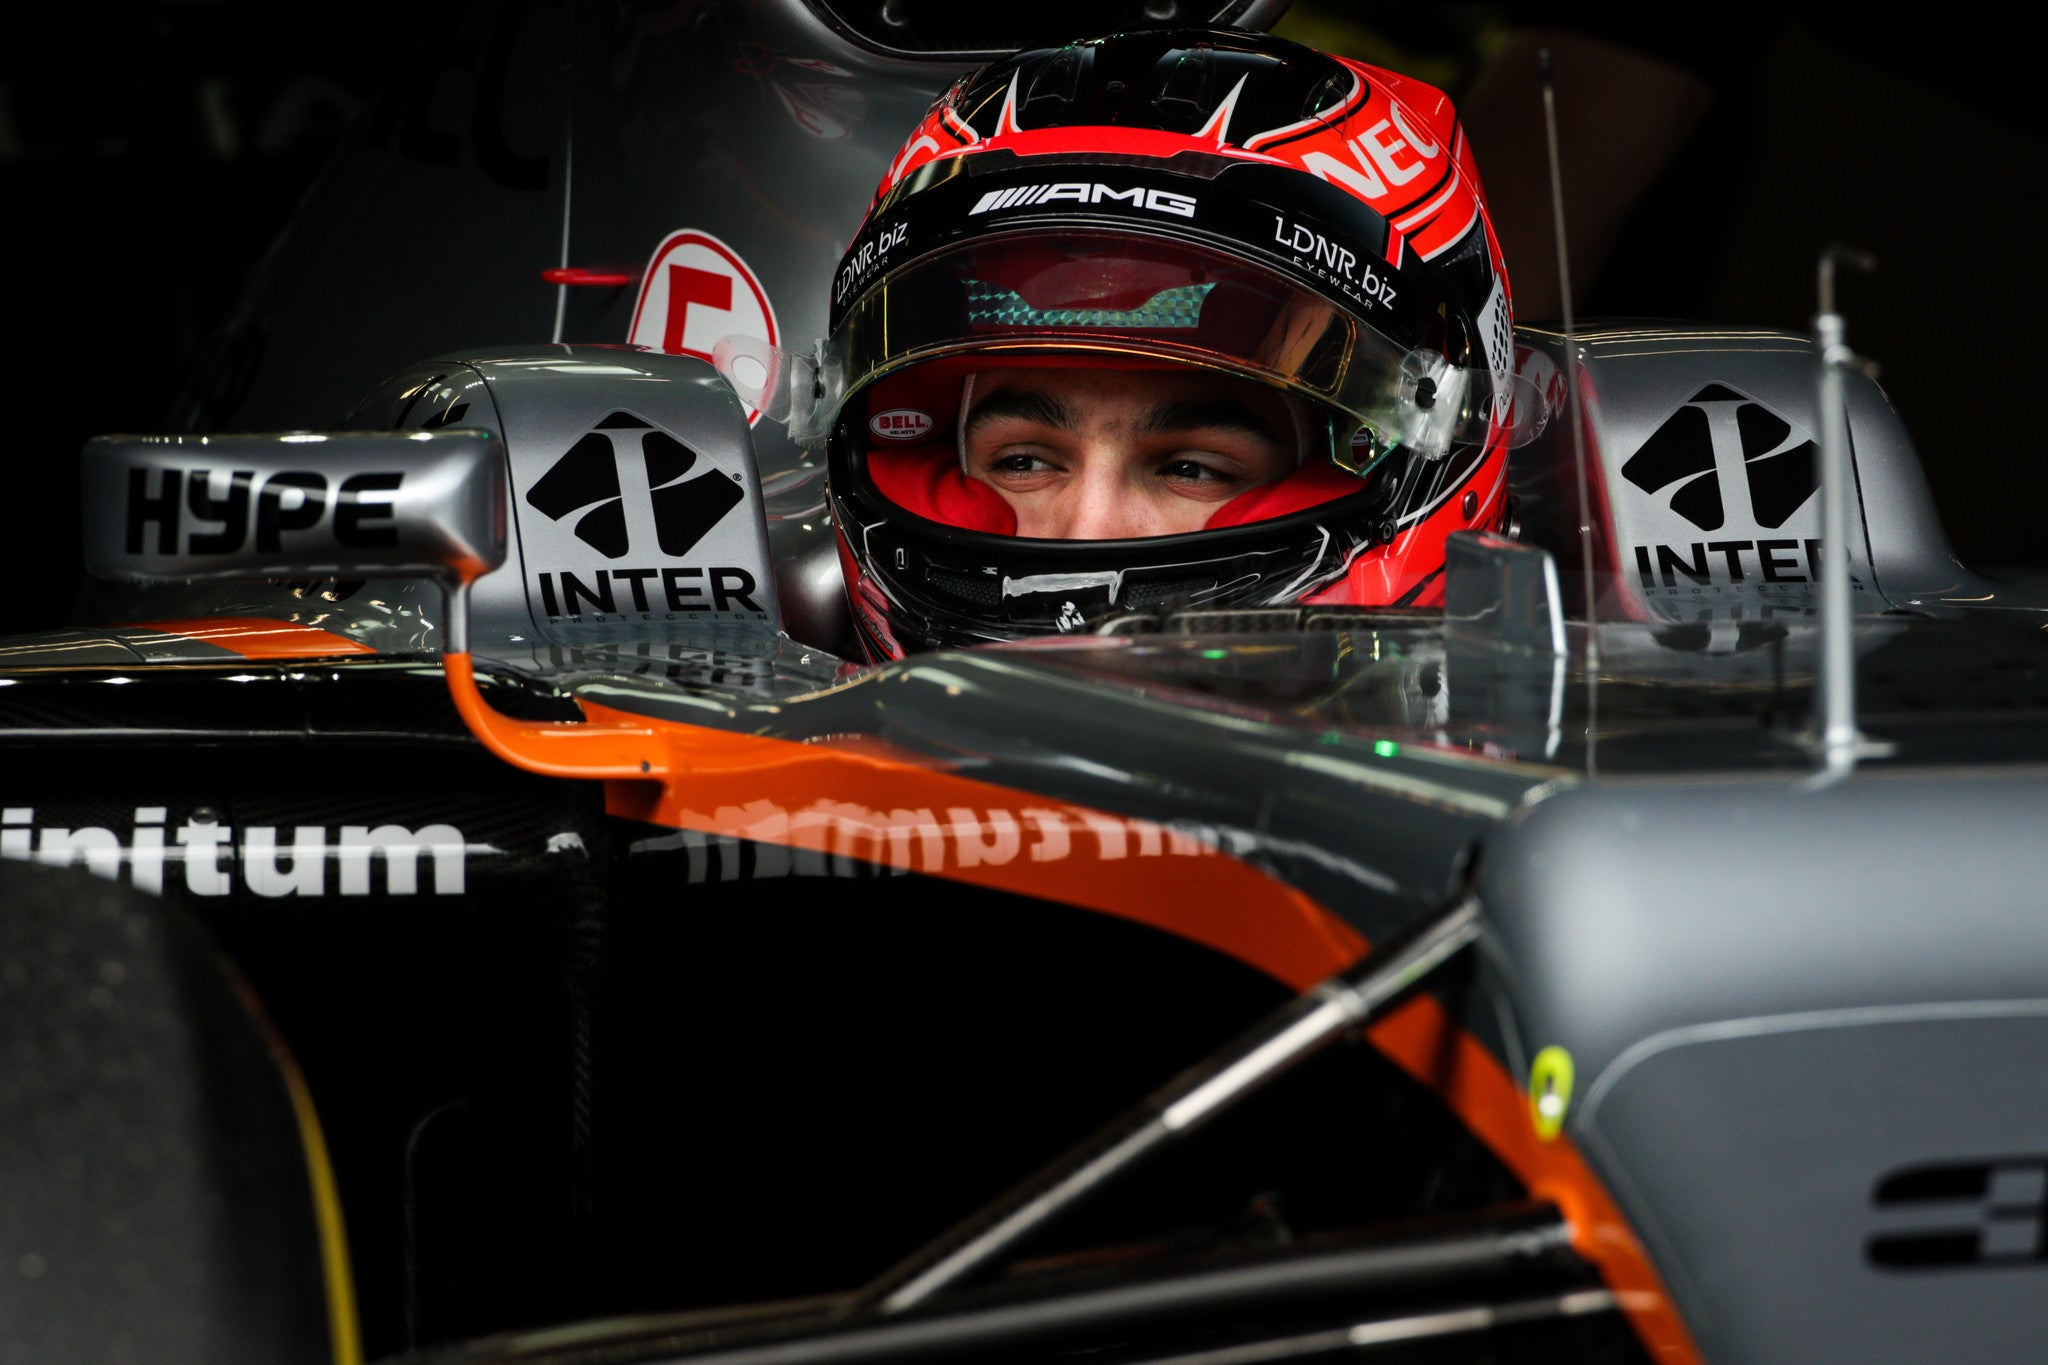 LDNR und Eye Respekt Fliegend hoch mit Sahara Force India Formula One Team